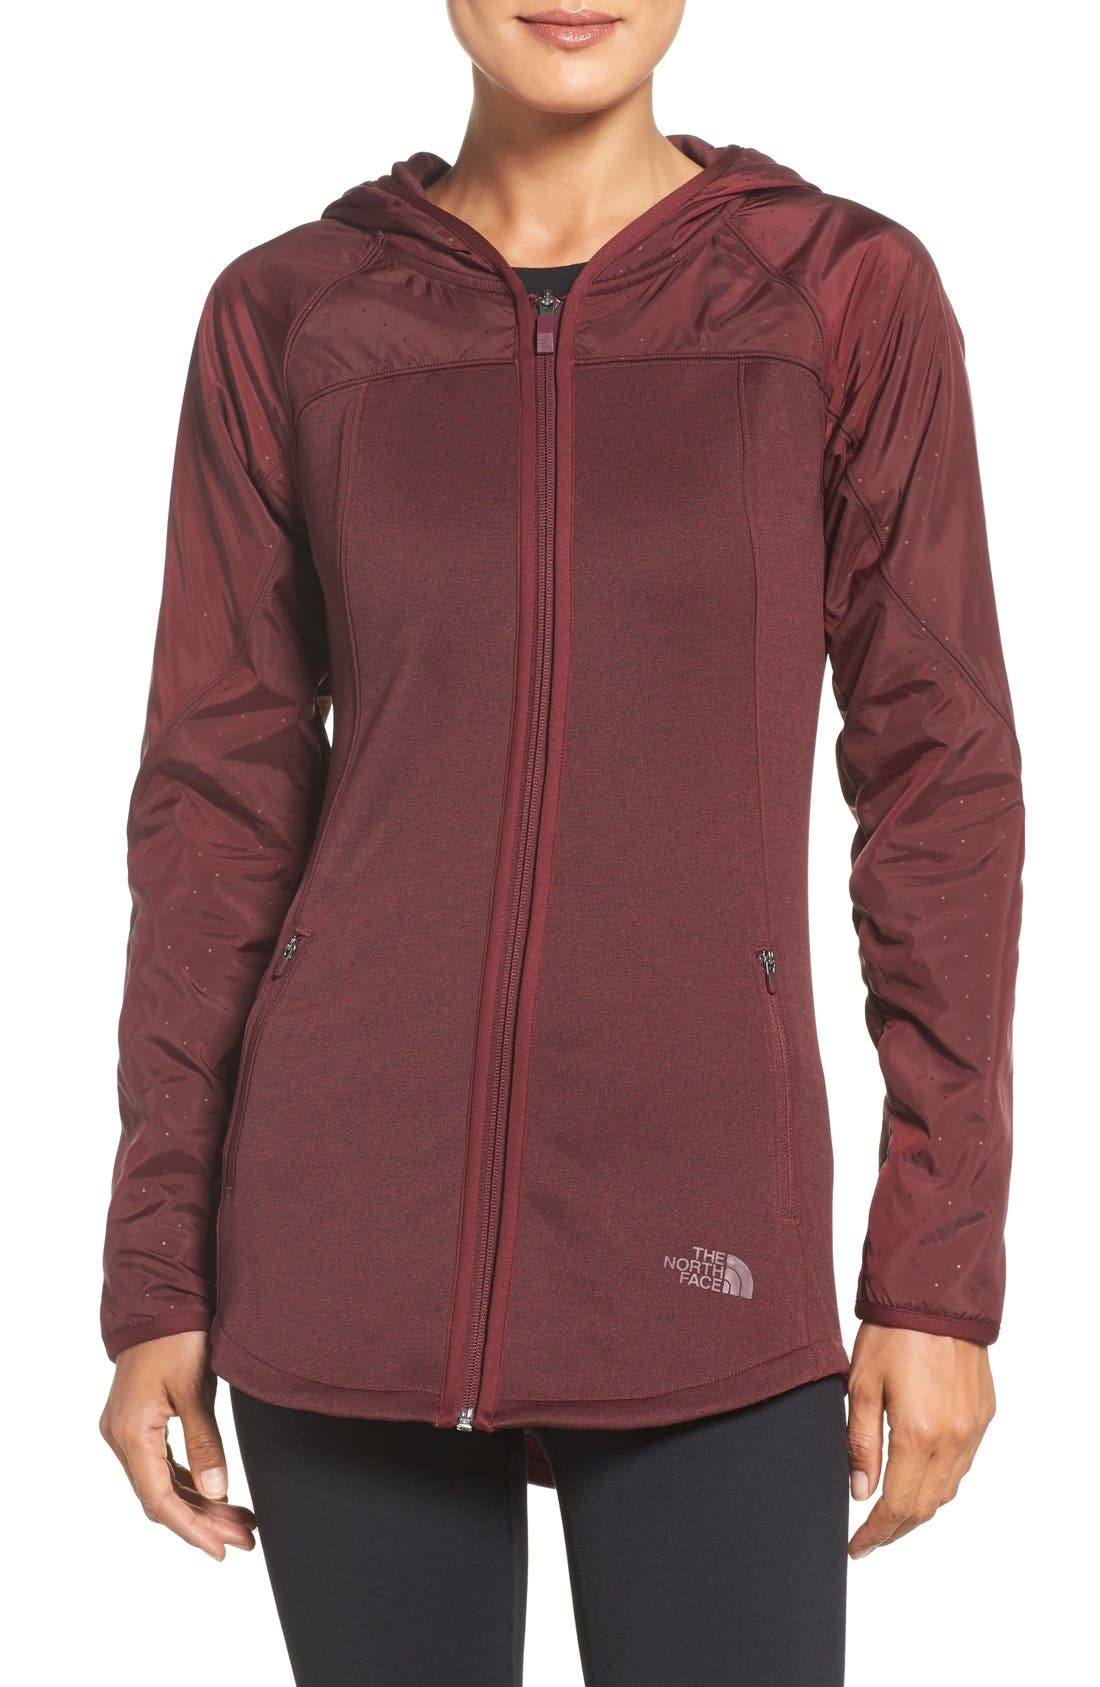 Alternate Image 1 Selected - The North Face 'Spark' Water Resistant Jacket